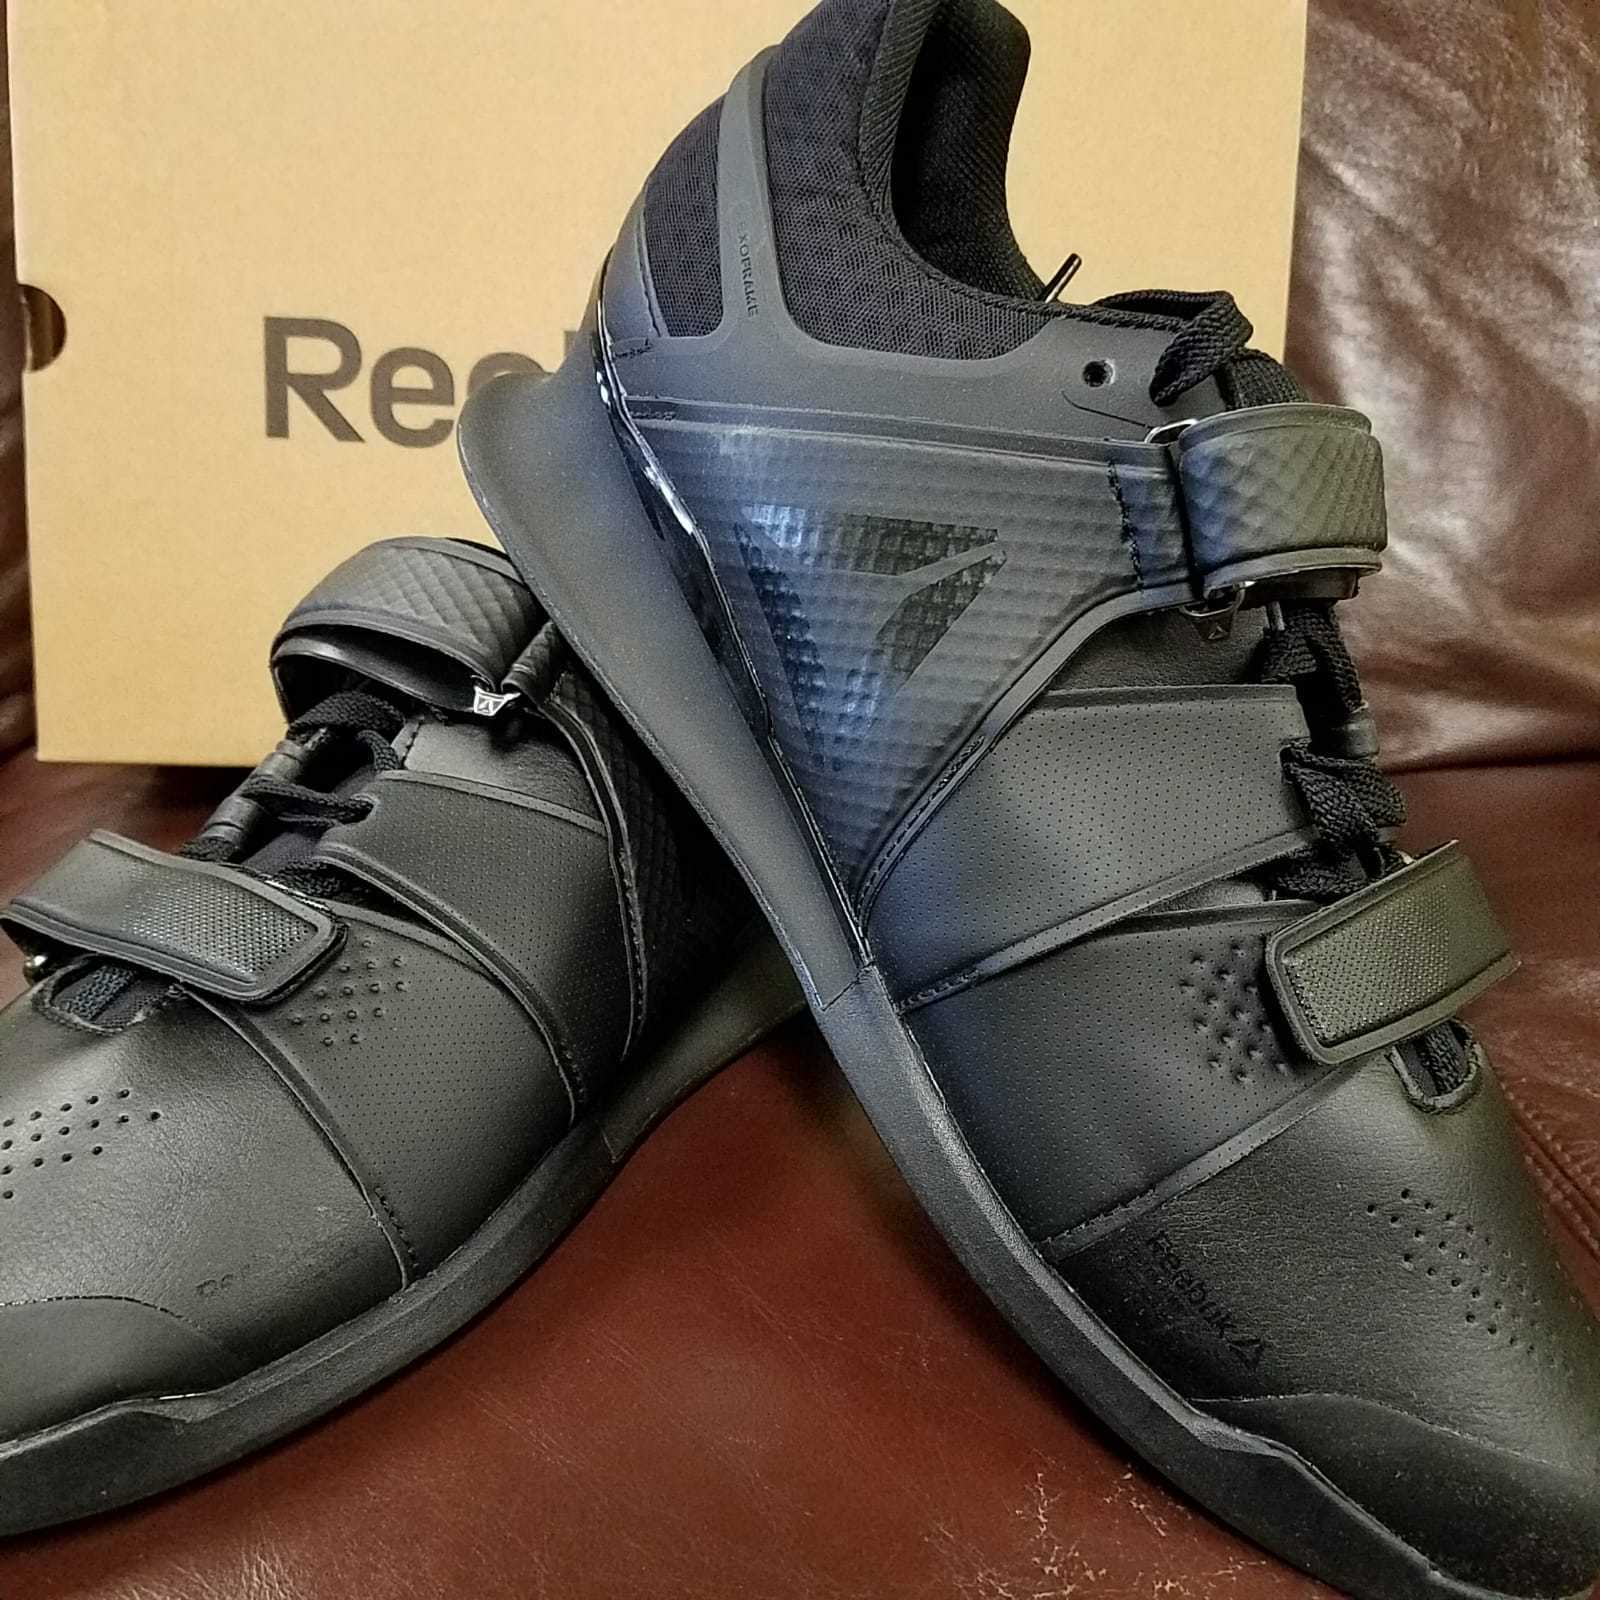 612aa4fa00c754 BRAND NEW IN BOX! REEBOK LEGACY LIFTER MENS WEIGHTLIFTING SHOES BLACK BLACK  4607